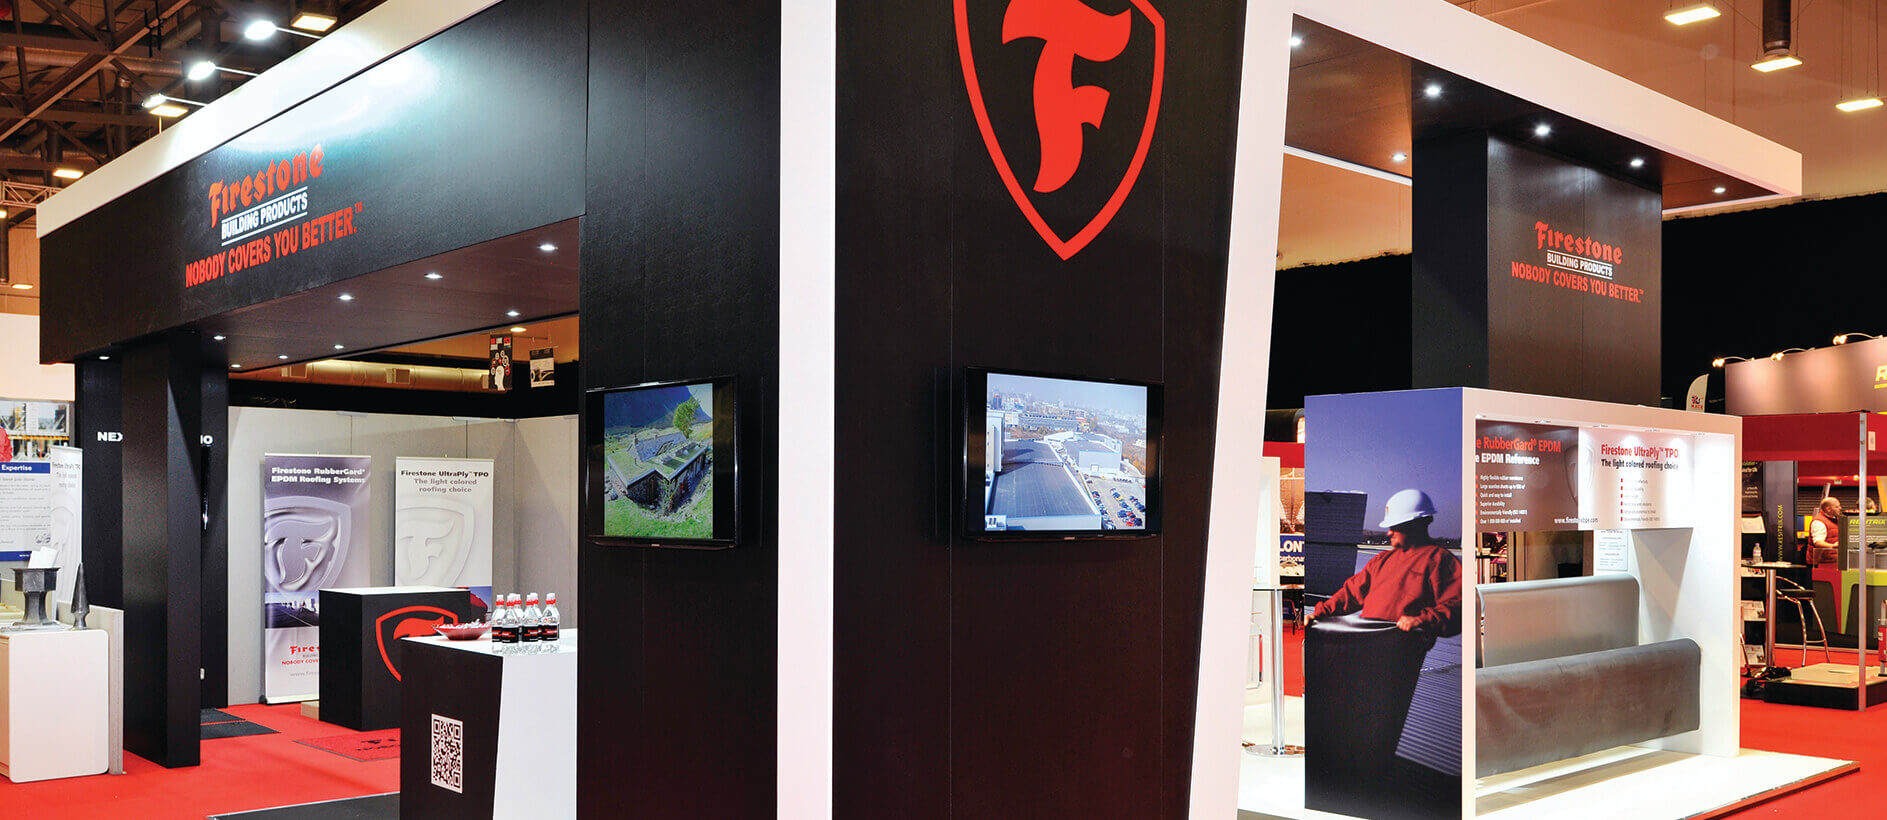 Audio visual equipment in the Firestone exhibition stand